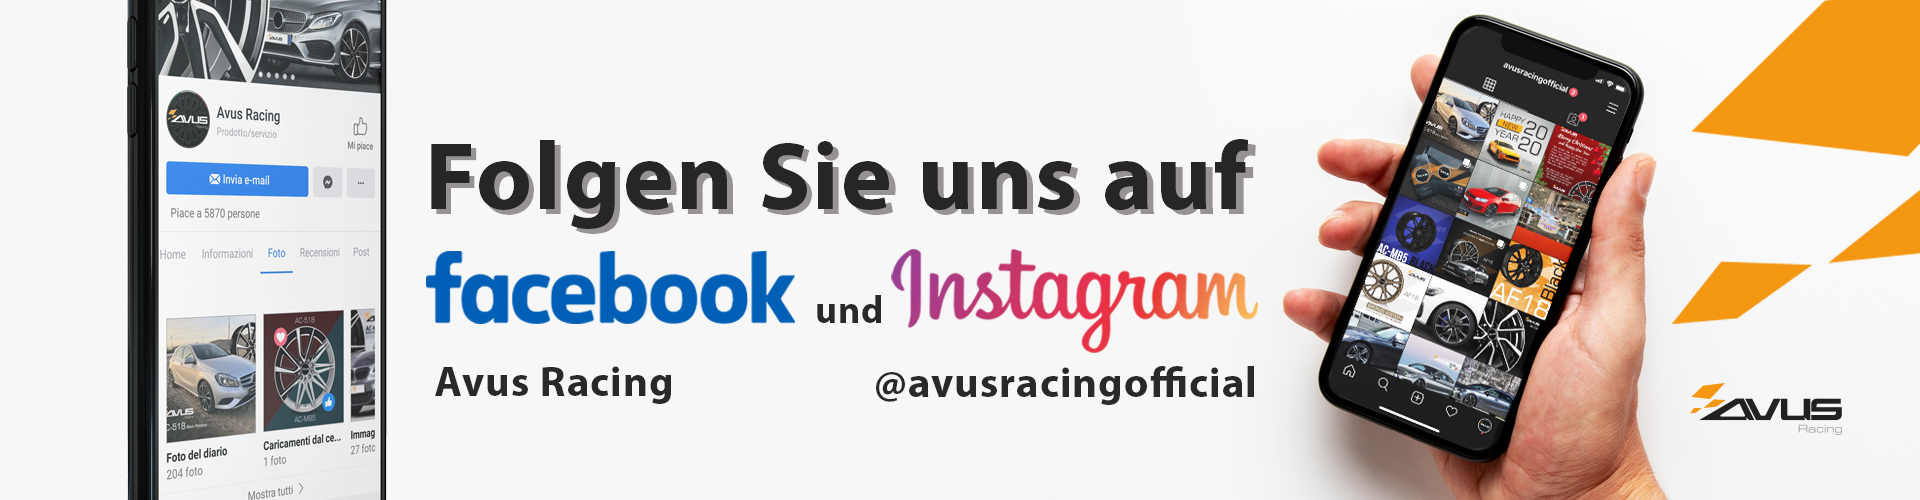 instagram facebook avus racing